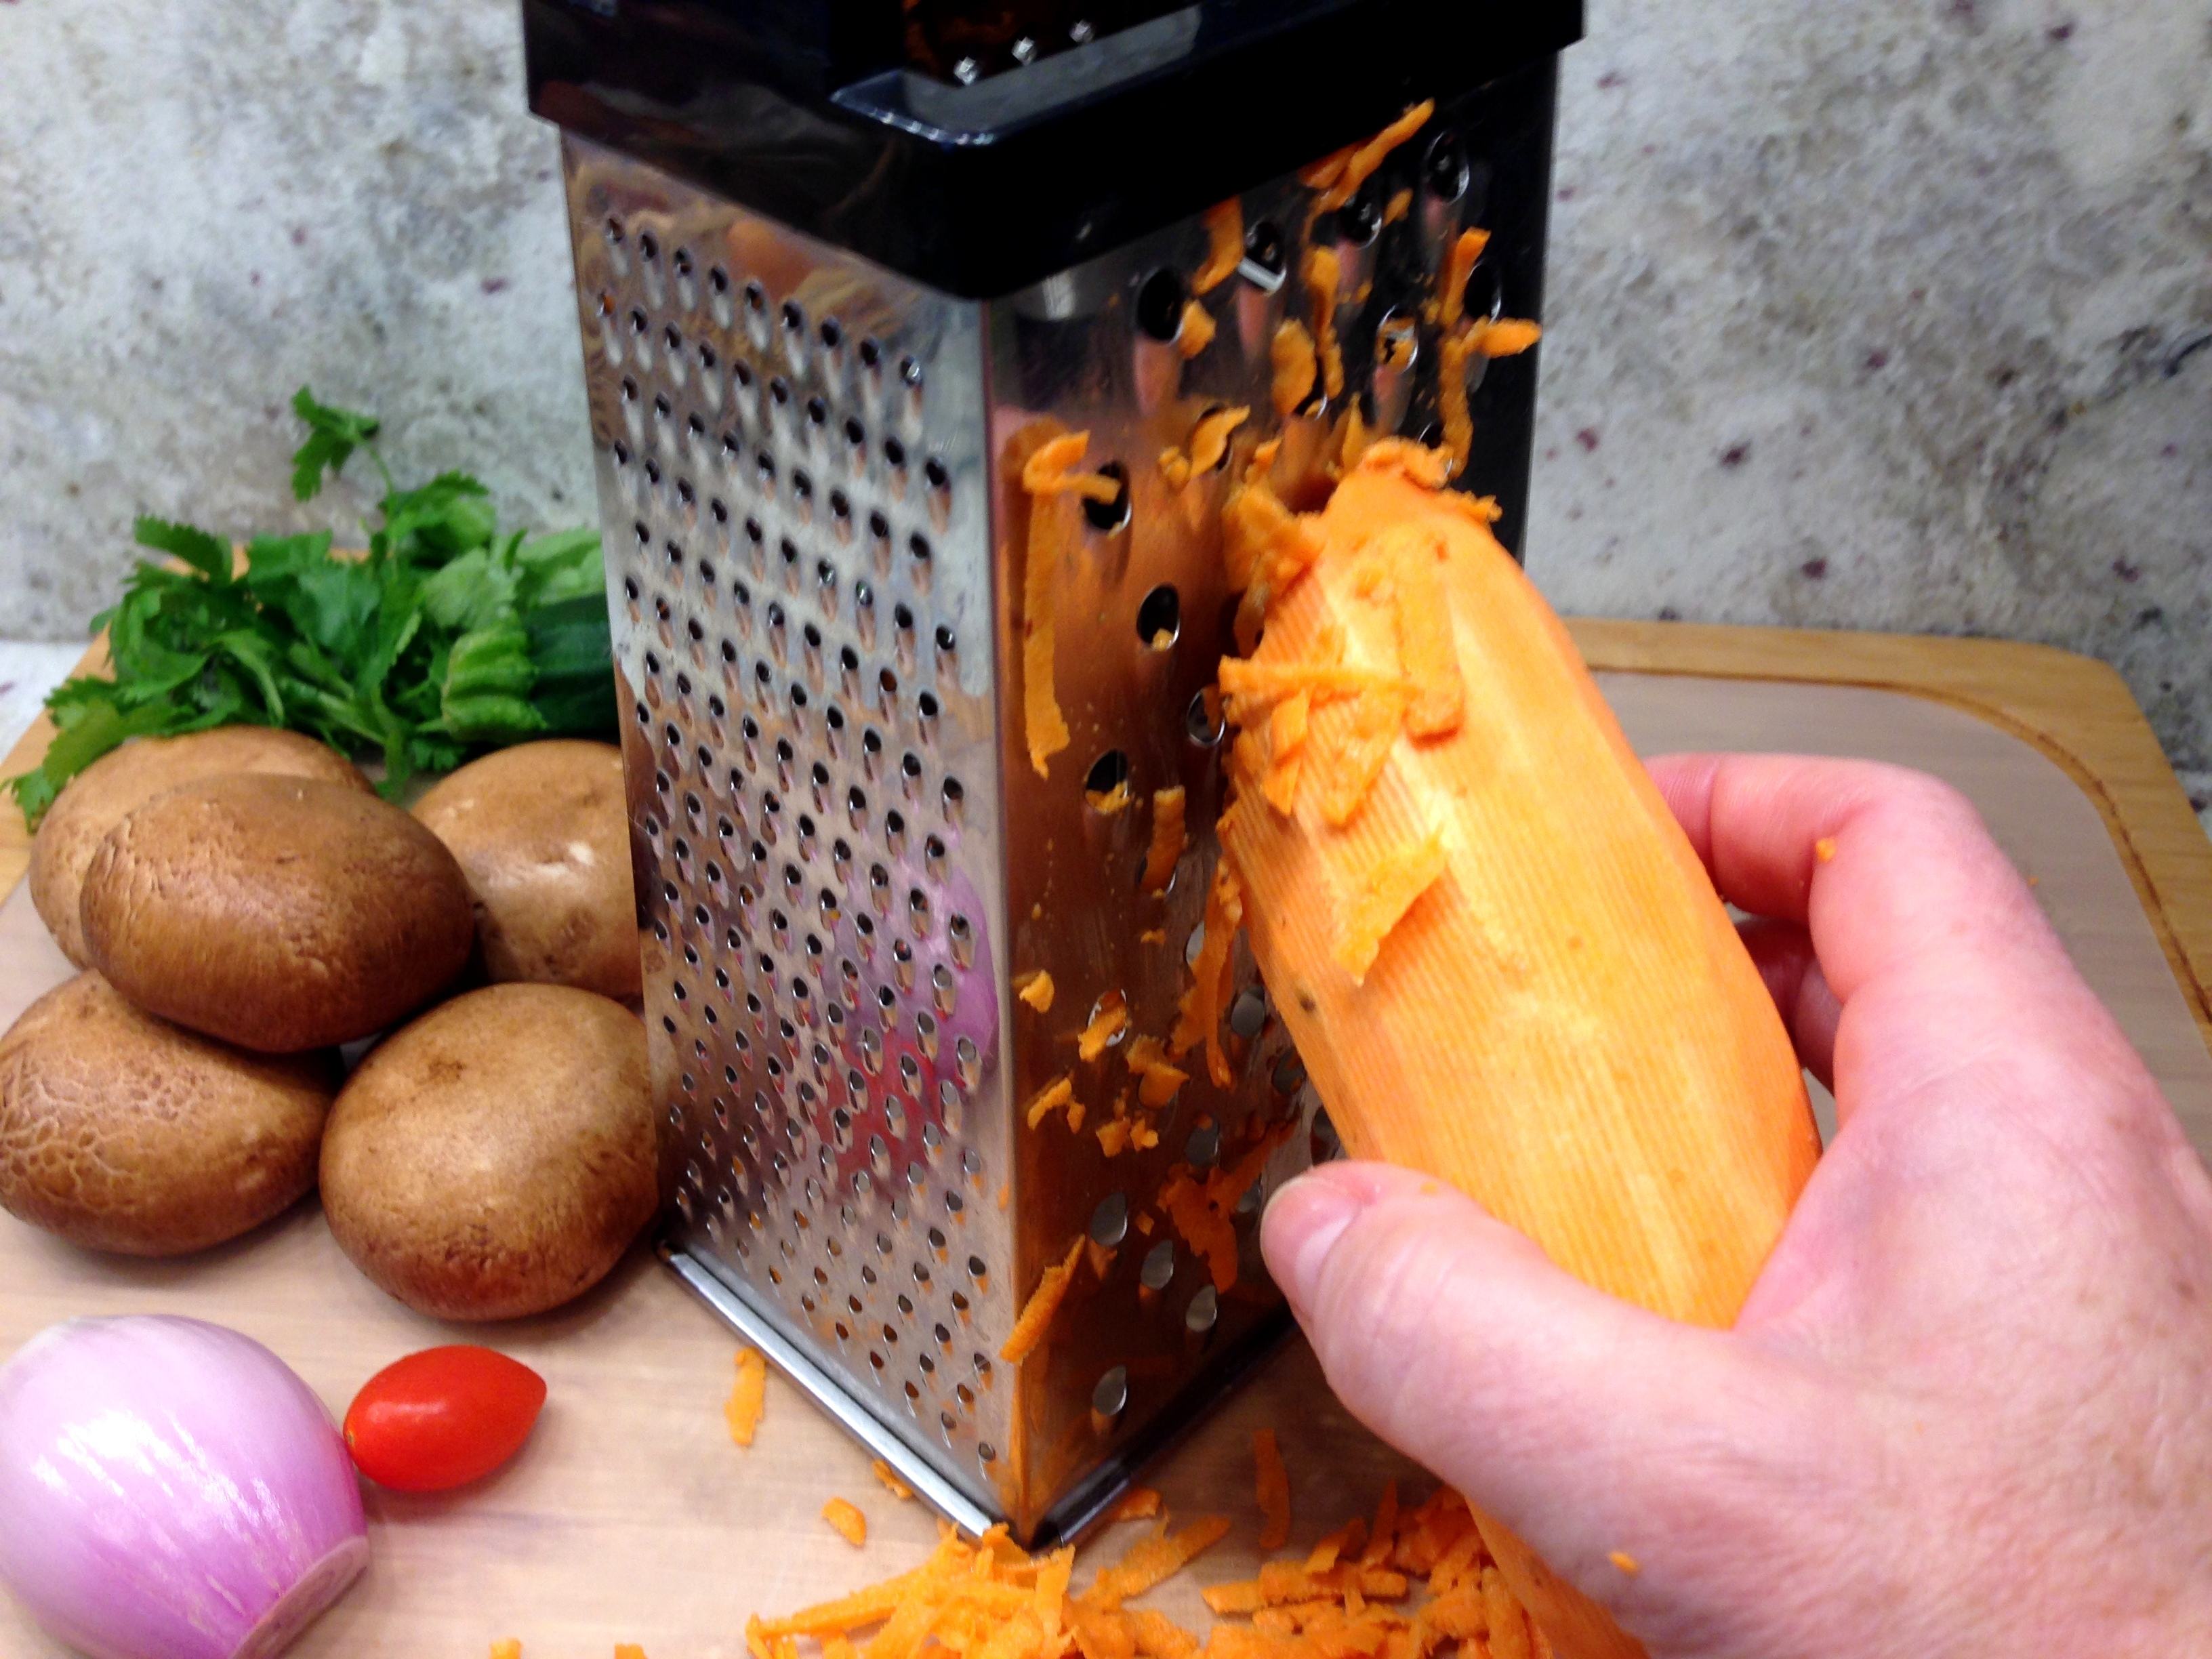 Grate the Sweet Potato